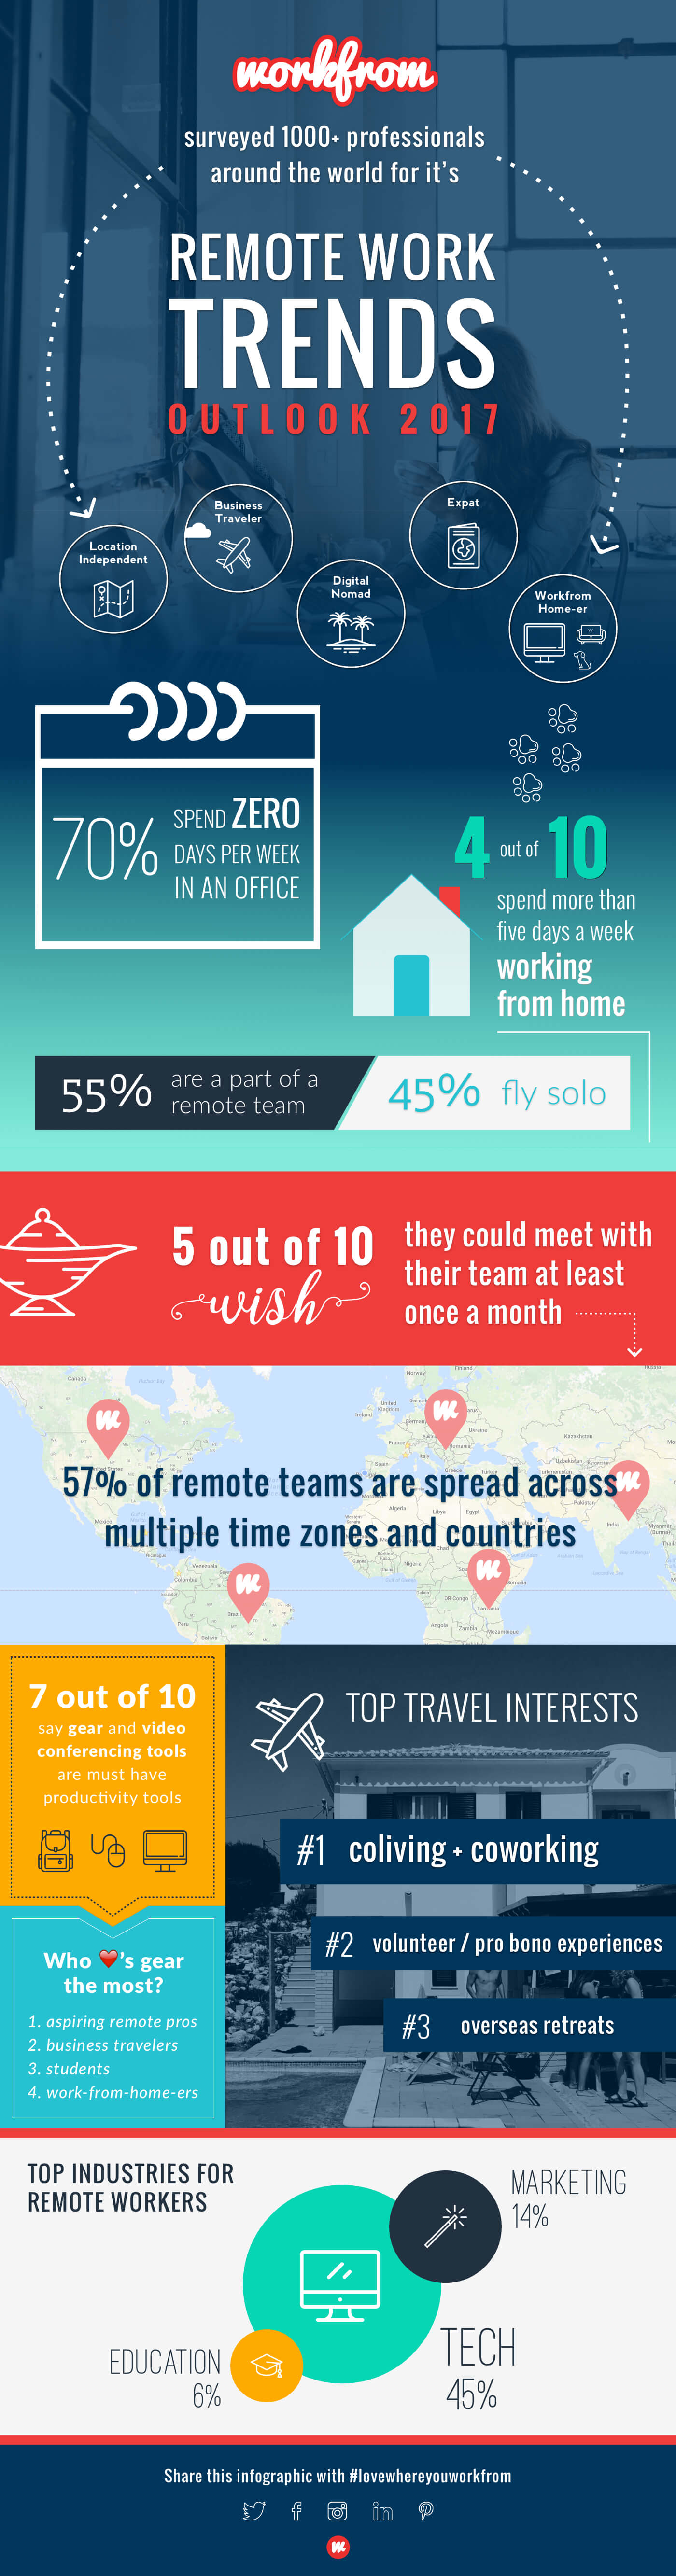 Trends in remote work 2017, infographic by Workfrom.co